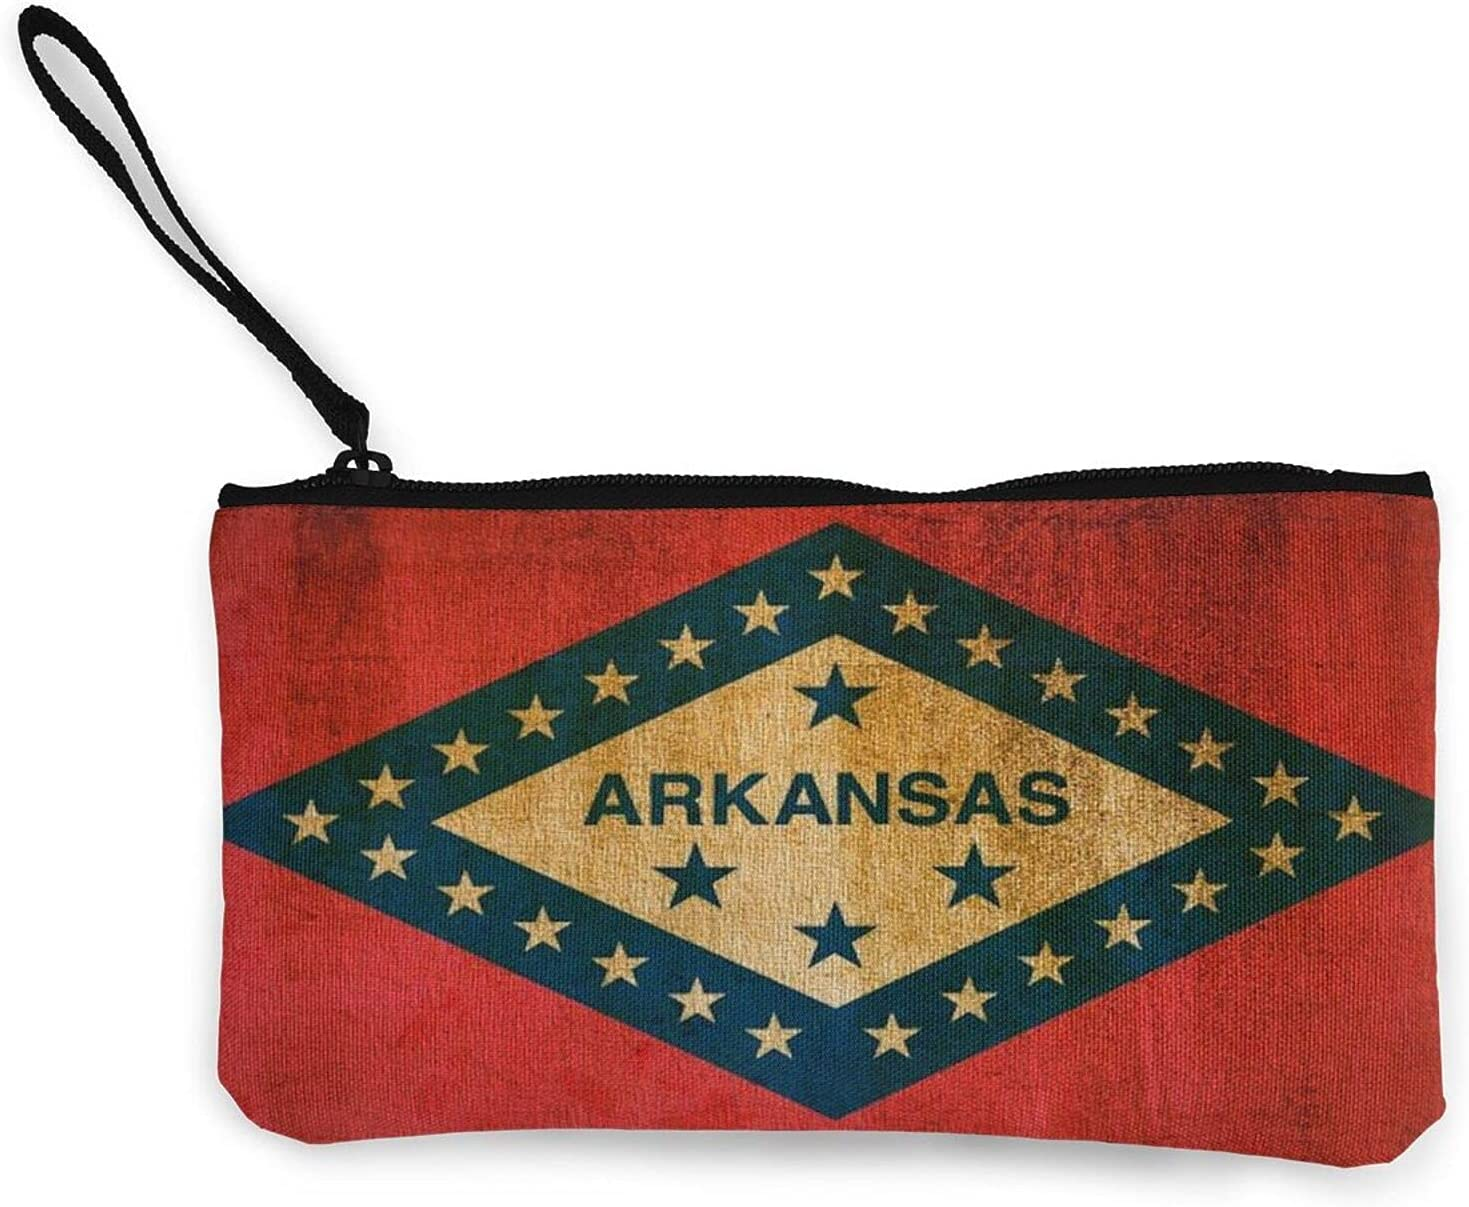 Vintage Arkansas State Flag Multifunction Travel Toiletry Pouch Small Canvas Coin Wallet Bag Zipper